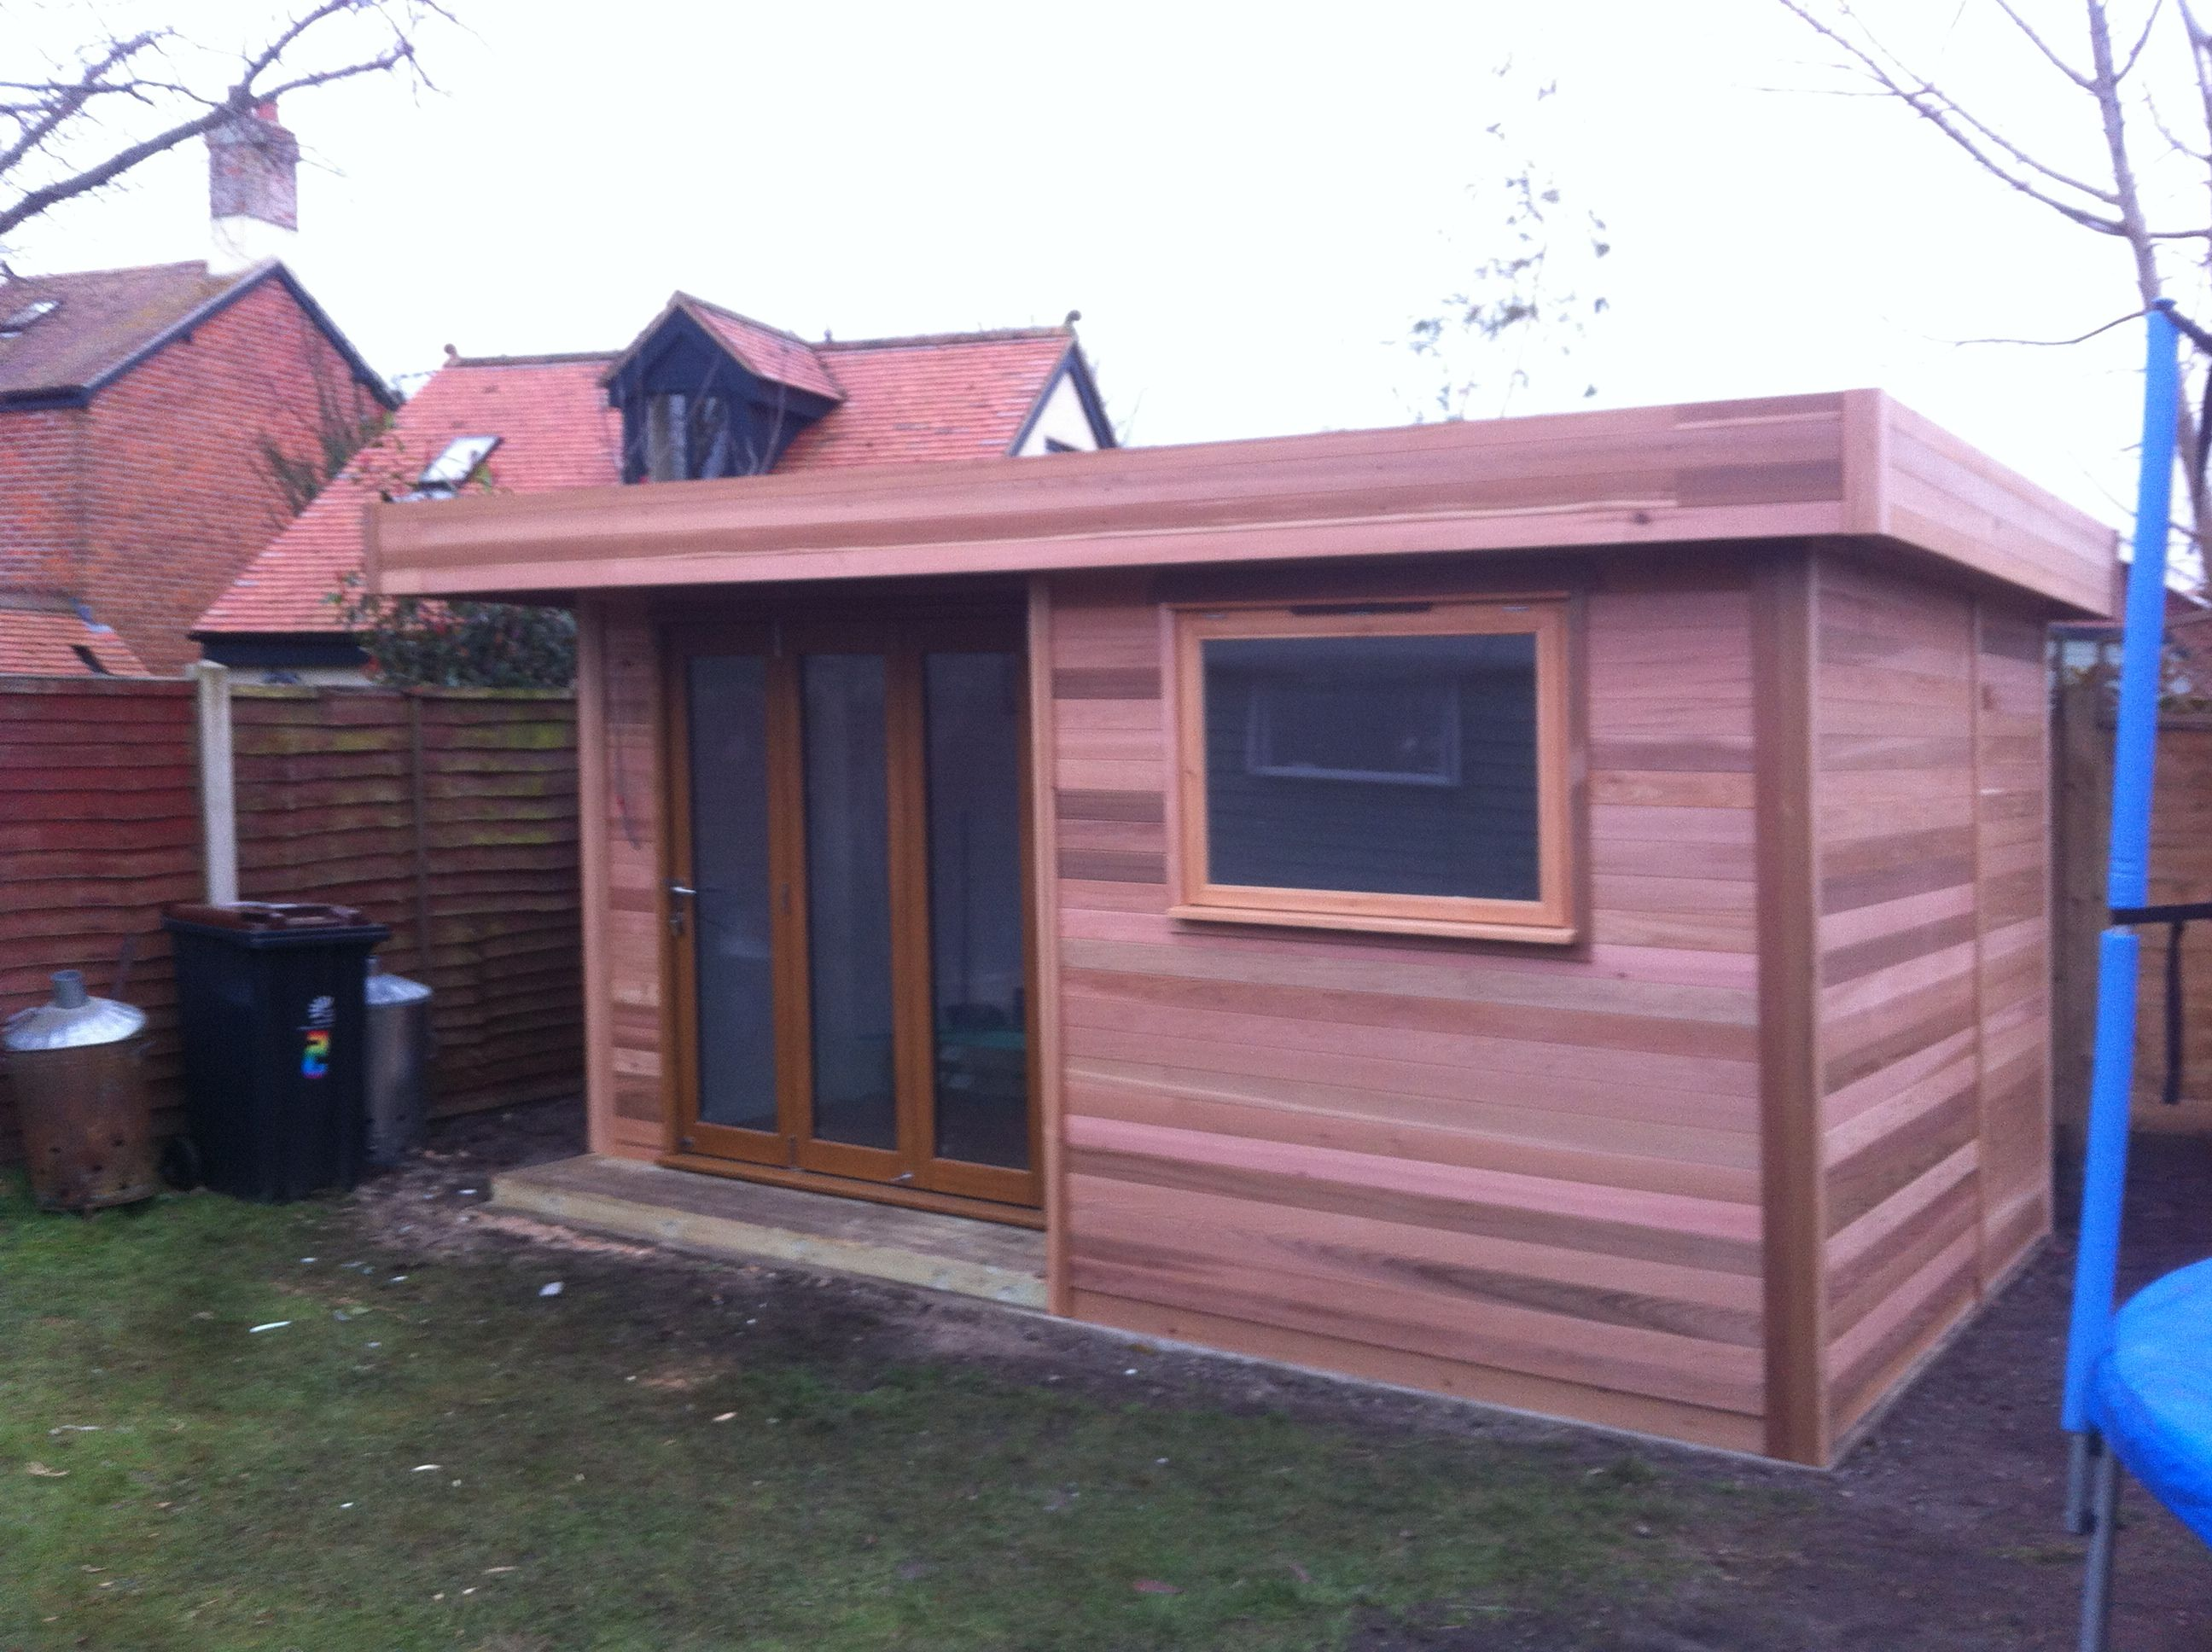 5m X 3m Cedar Garden Room With Bi Fold Door In Recess Area.